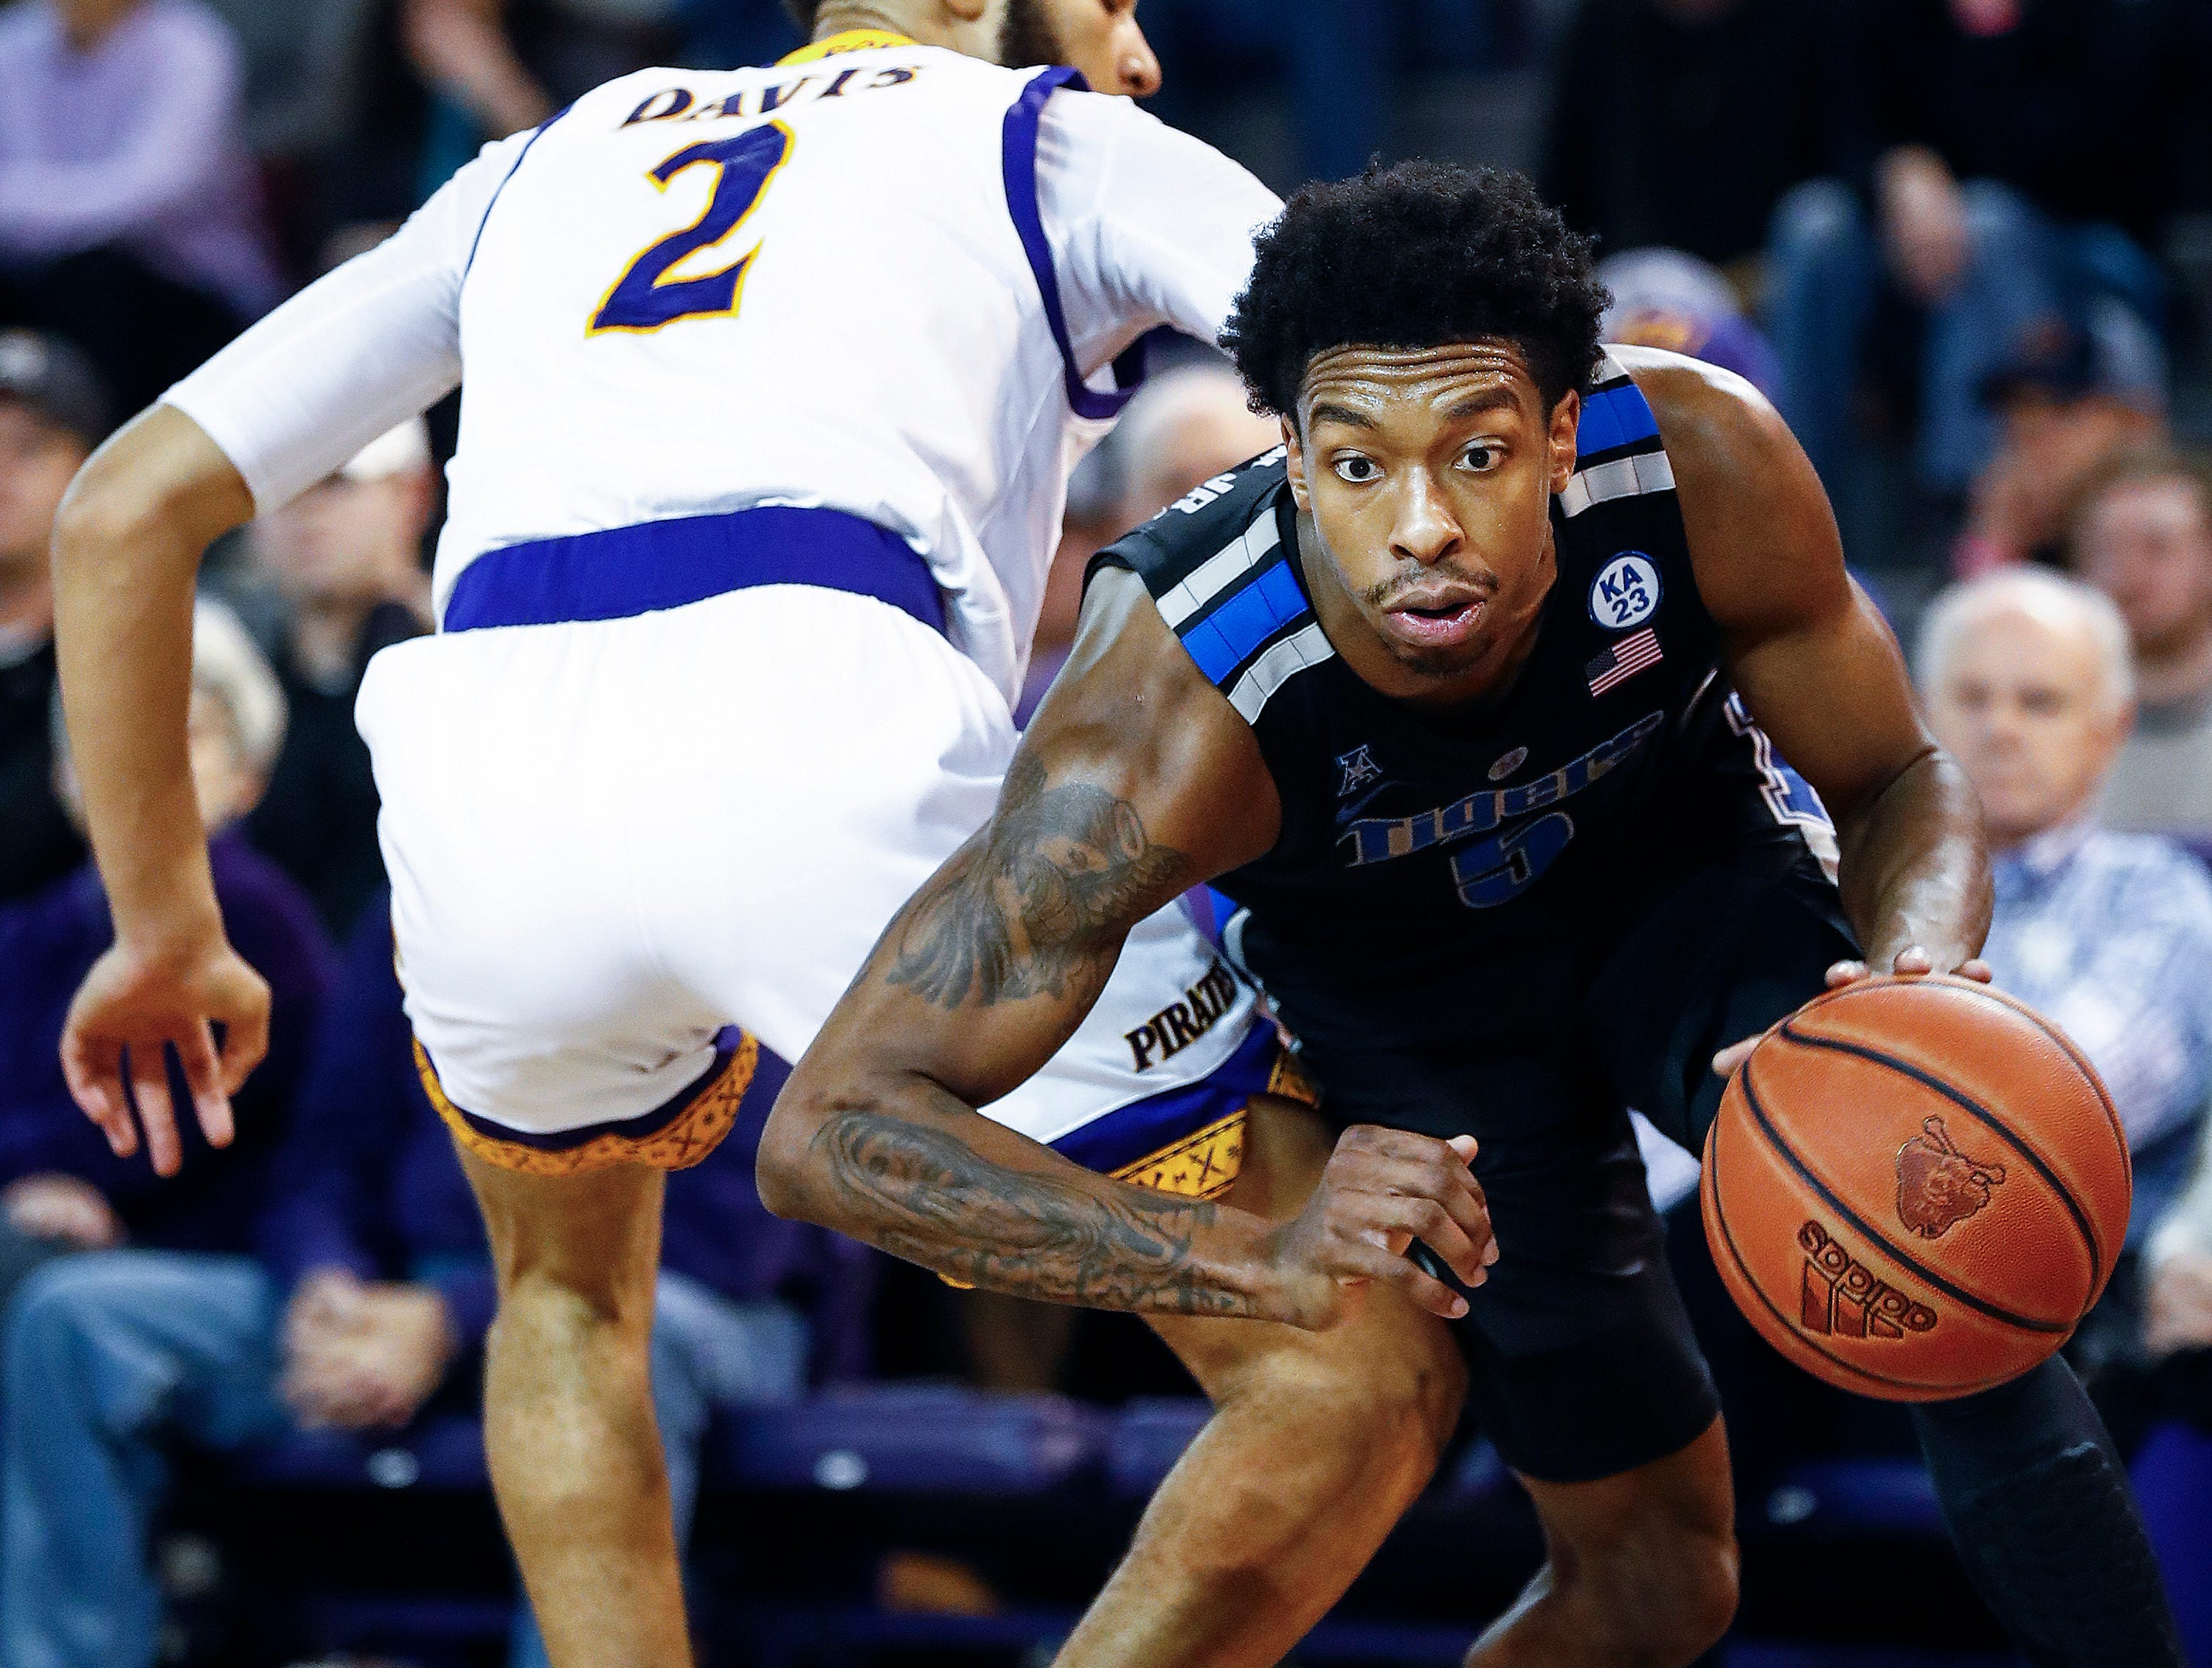 Memphis guard Kareem Brewton Jr. (right) drives by ECU defender K.J. Davis (left) for a layup during action in Greenville, N.C. Wednesday, February 13, 2019.